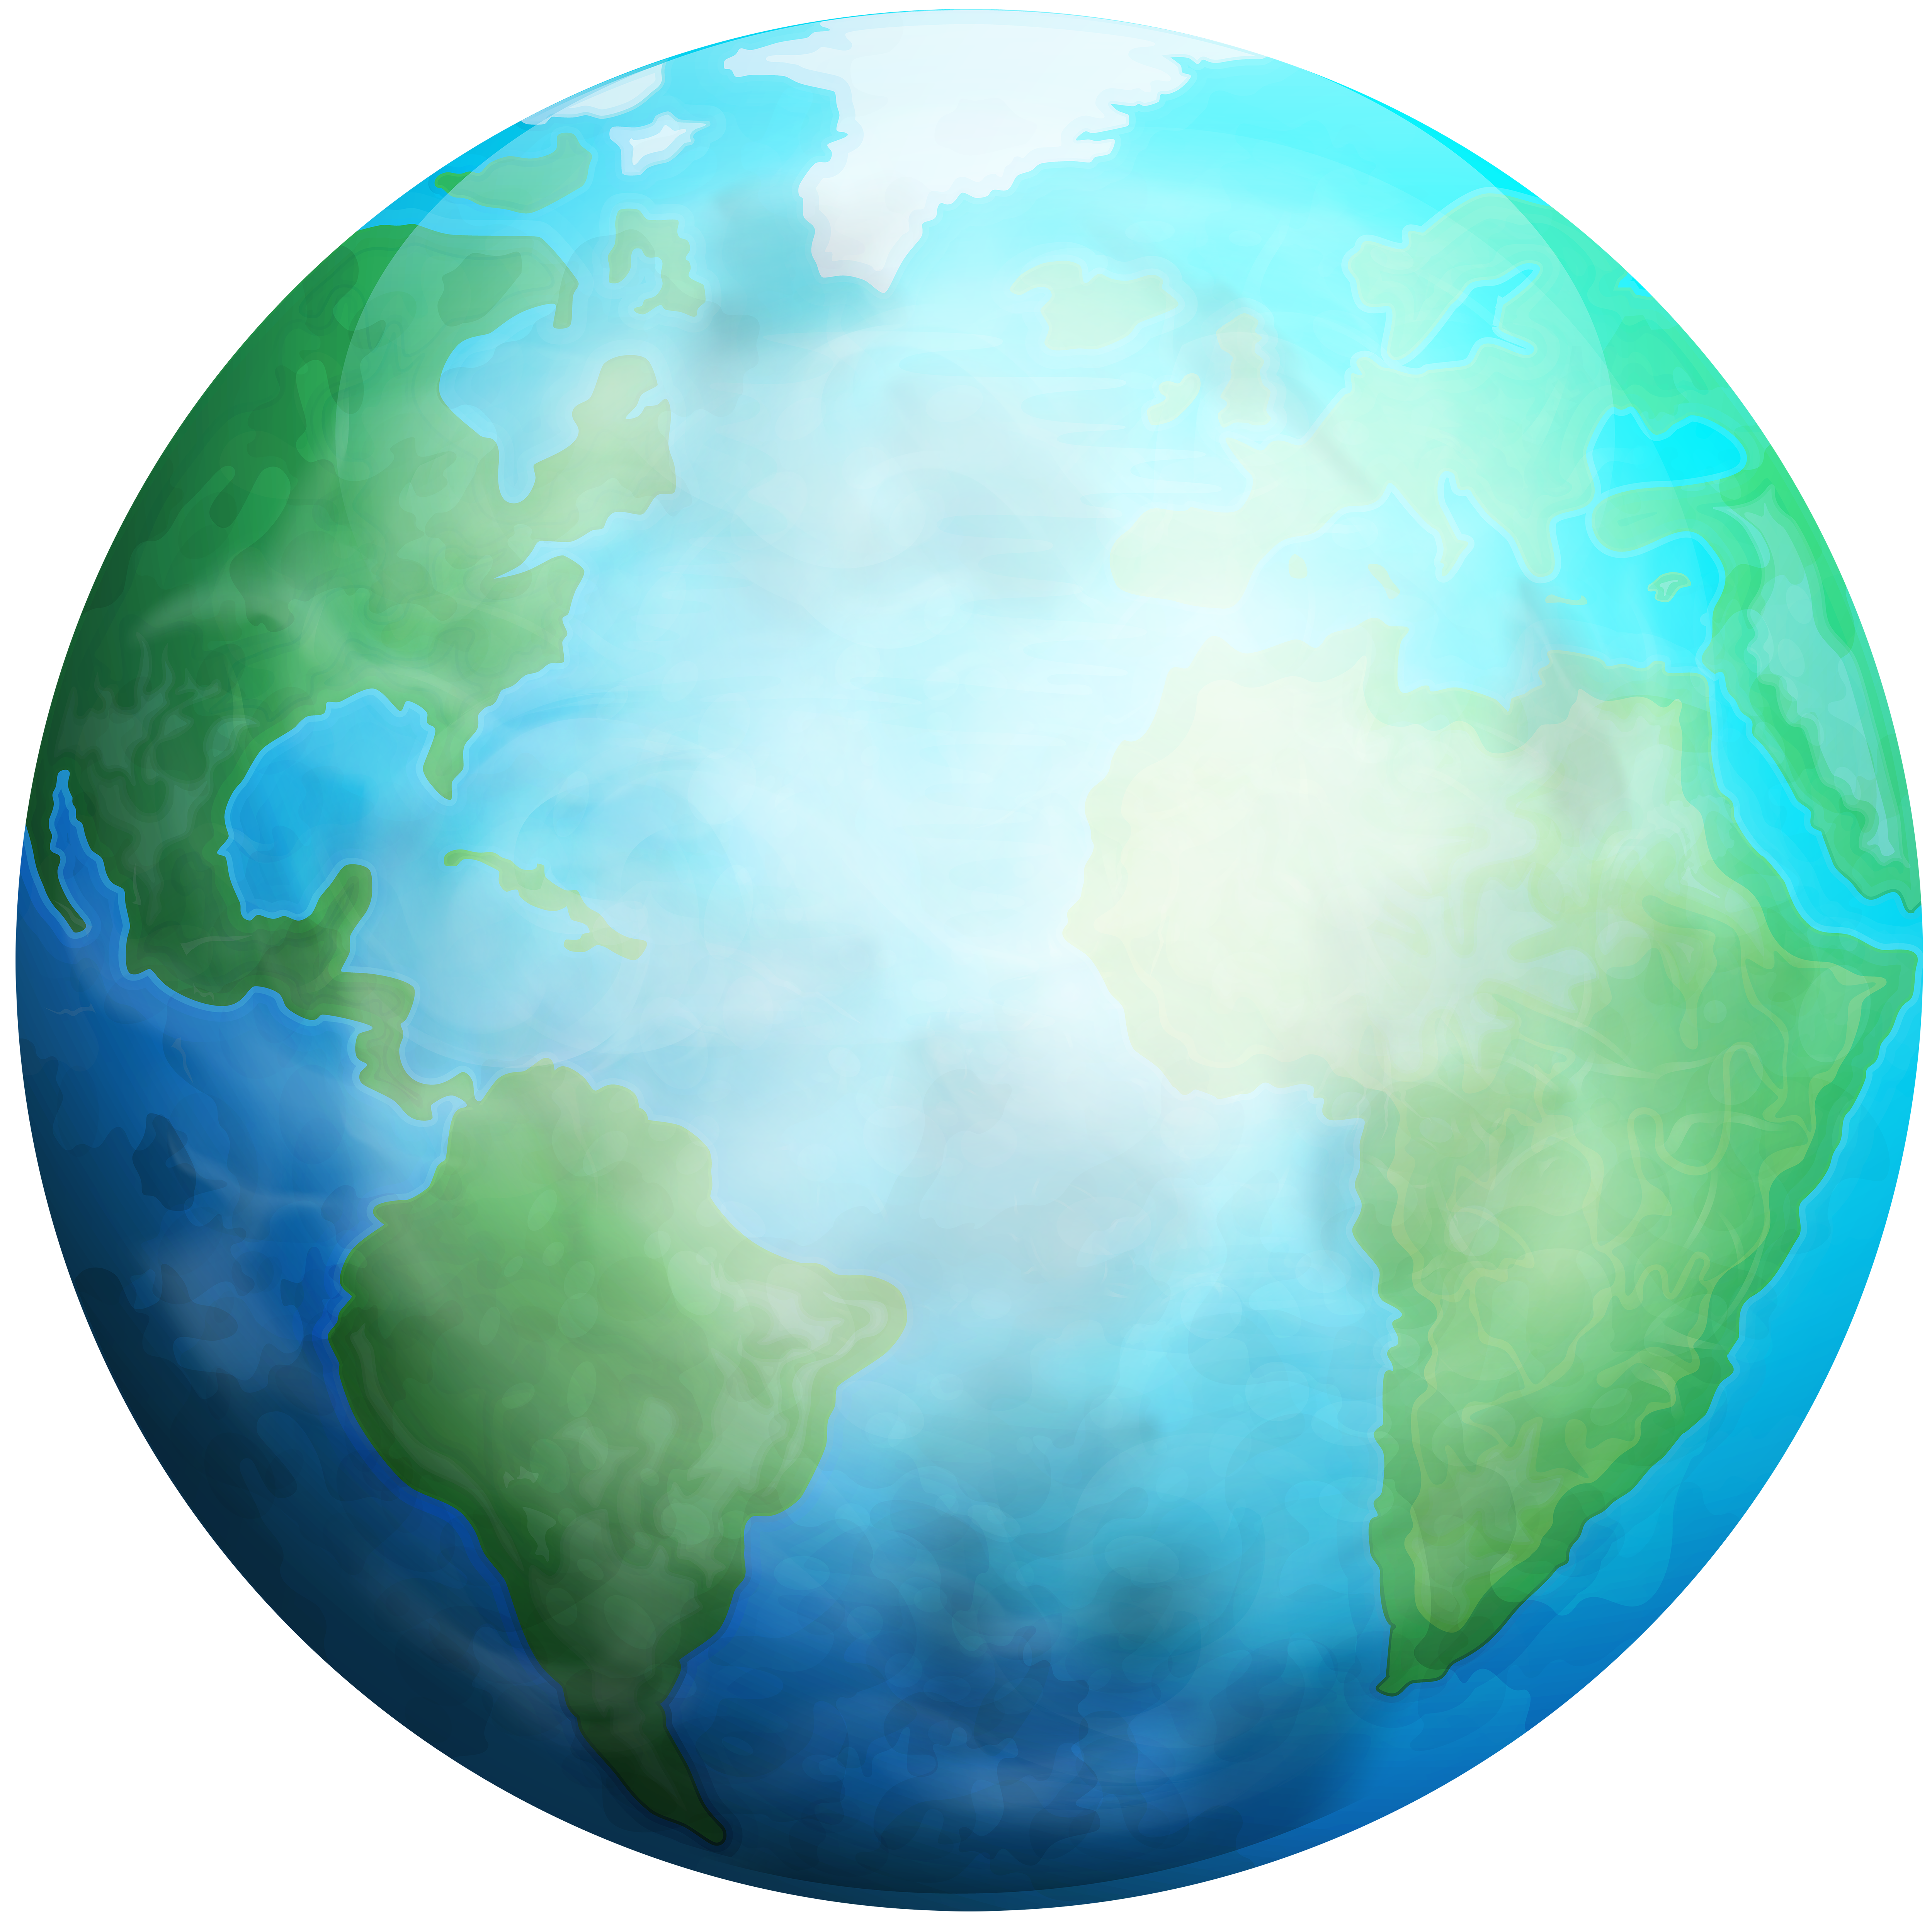 Clipart earth high resolution. Png clip art image